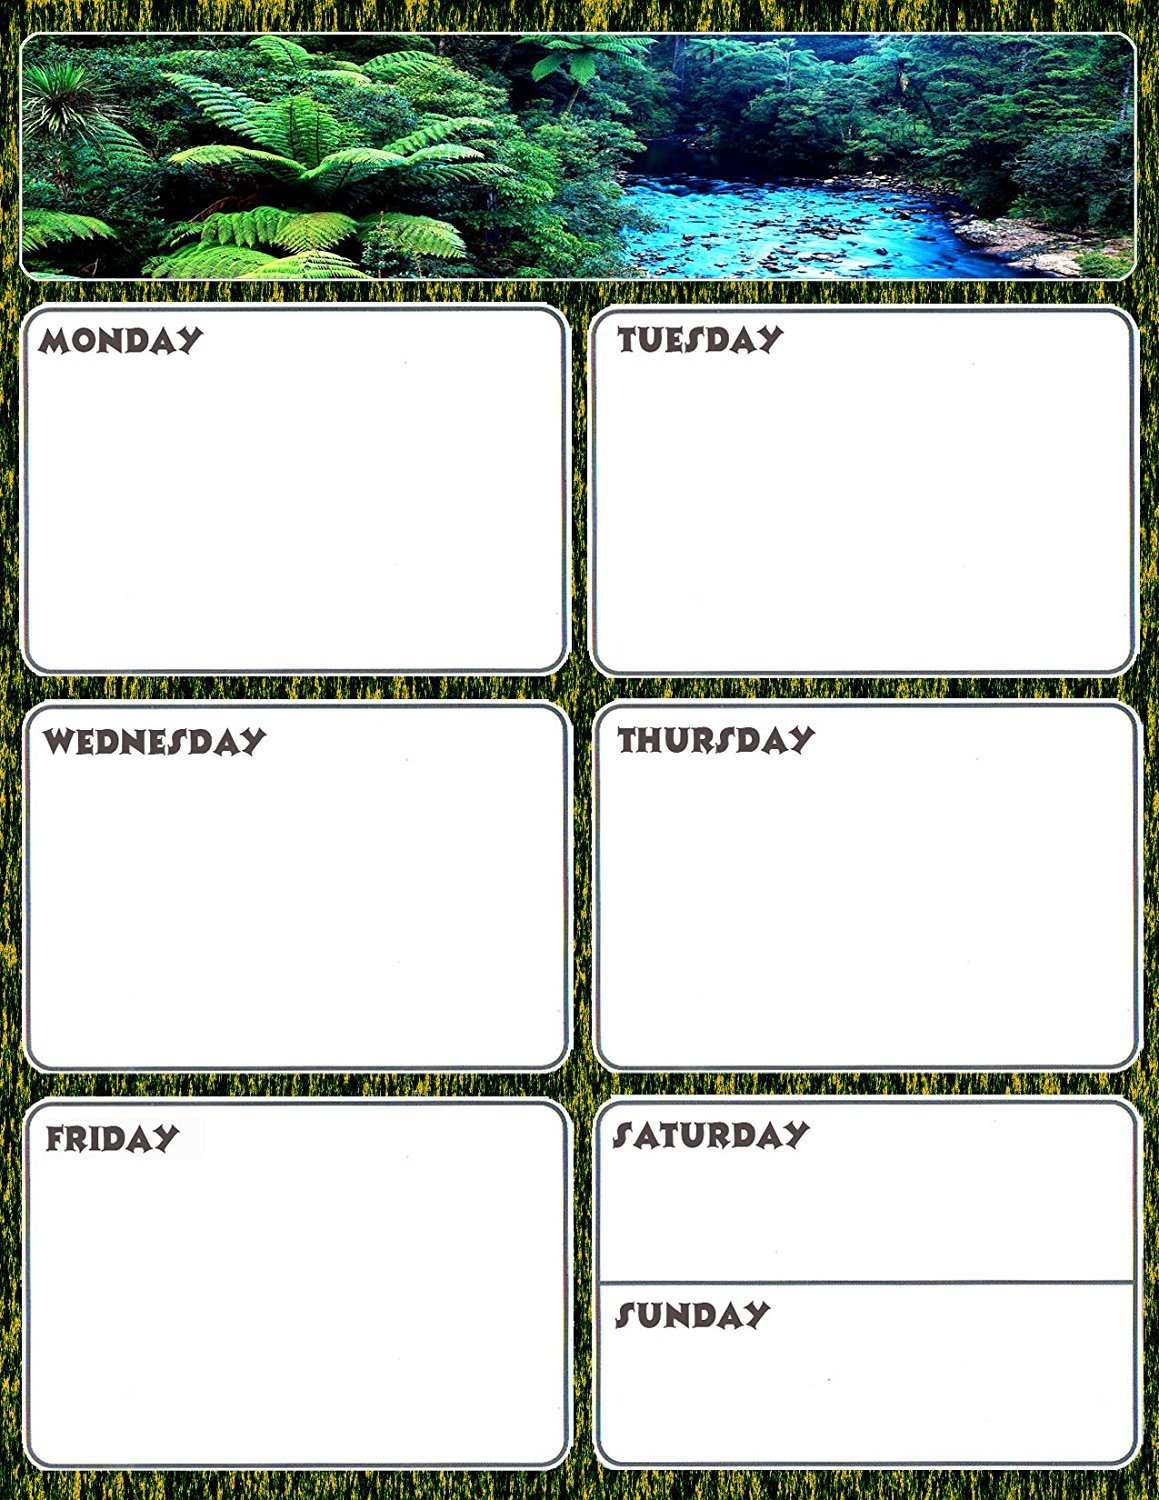 Magnetic Dry Erase Calendar - Weekly Planner / Locker Wallpaper - (Full sheet Magnetic) - v2